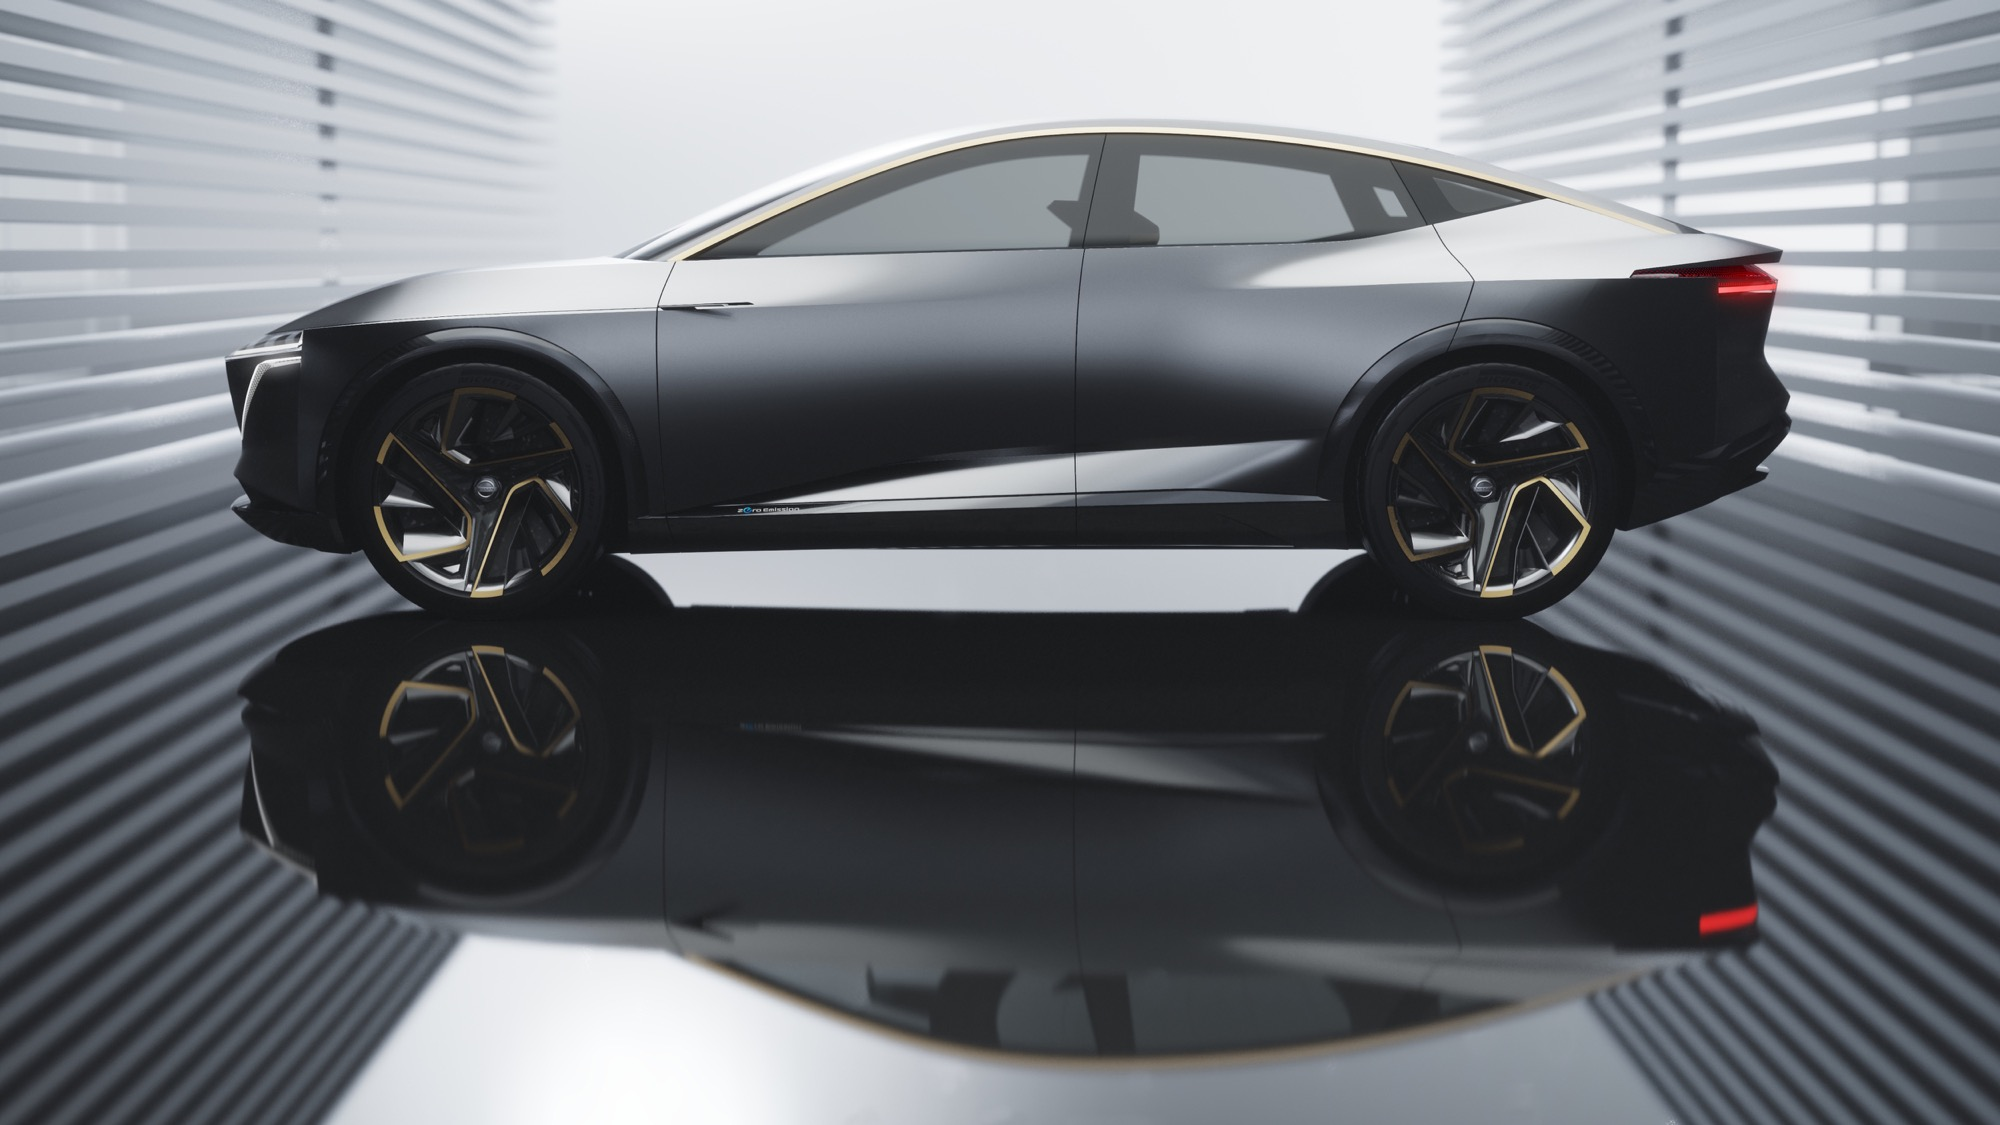 Nissan breaks the mould with IMs concept